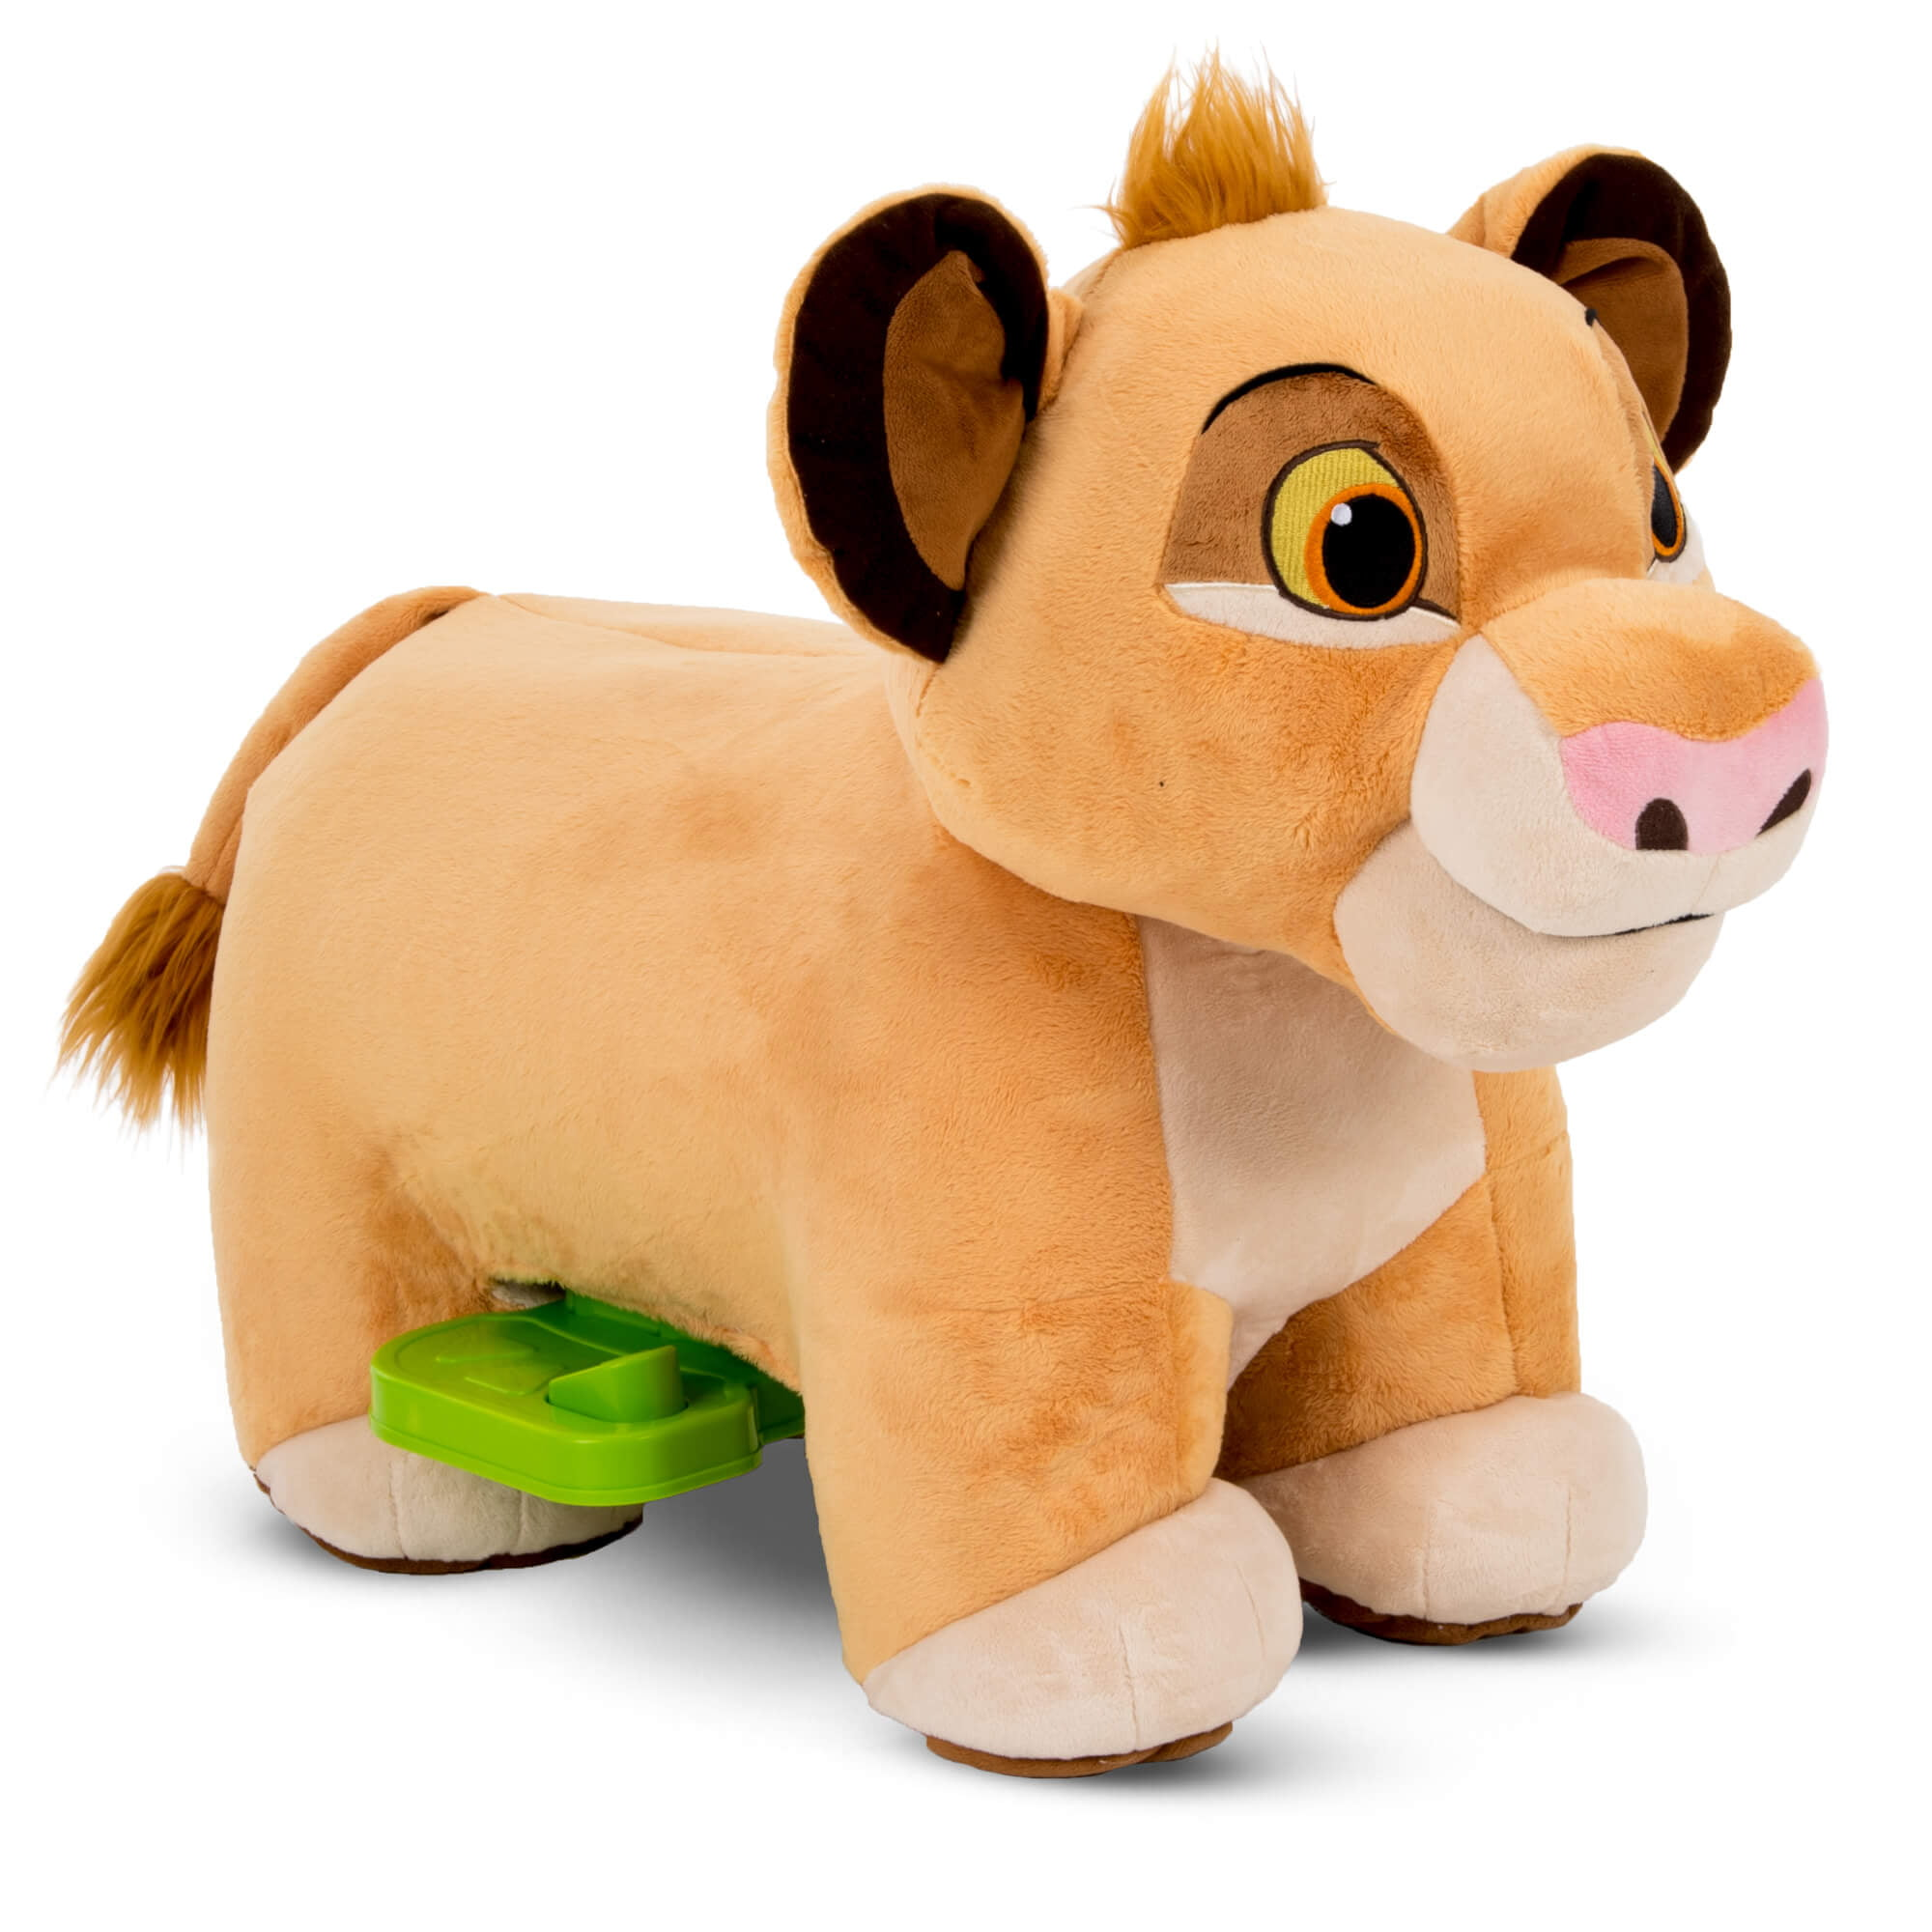 Disney Lion King Simba 6V Plush Ride-On Toy for Toddlers by Huffy by Huffy